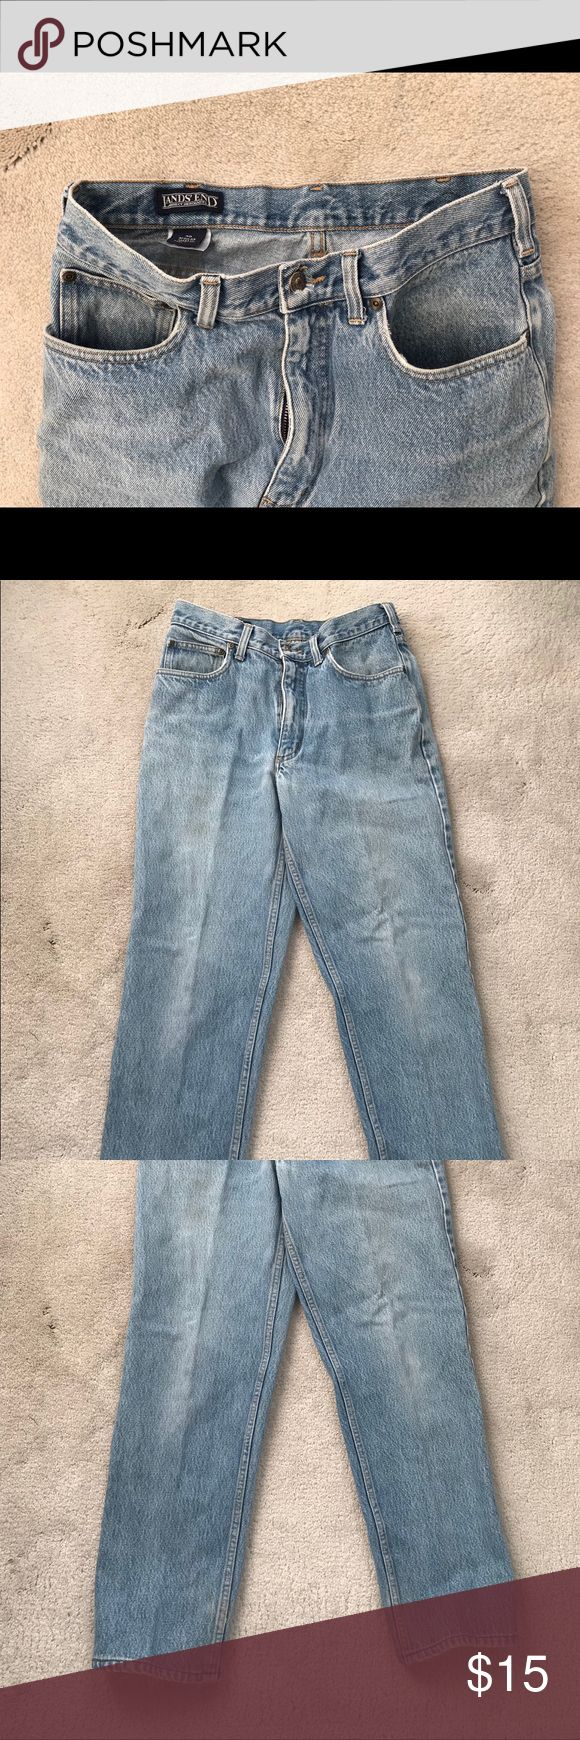 LANDS END Men's Jeans Size 30 Regular, but runs tight. Used. 3 pairs available for sale; each sold individually. Lands End Jeans Straight